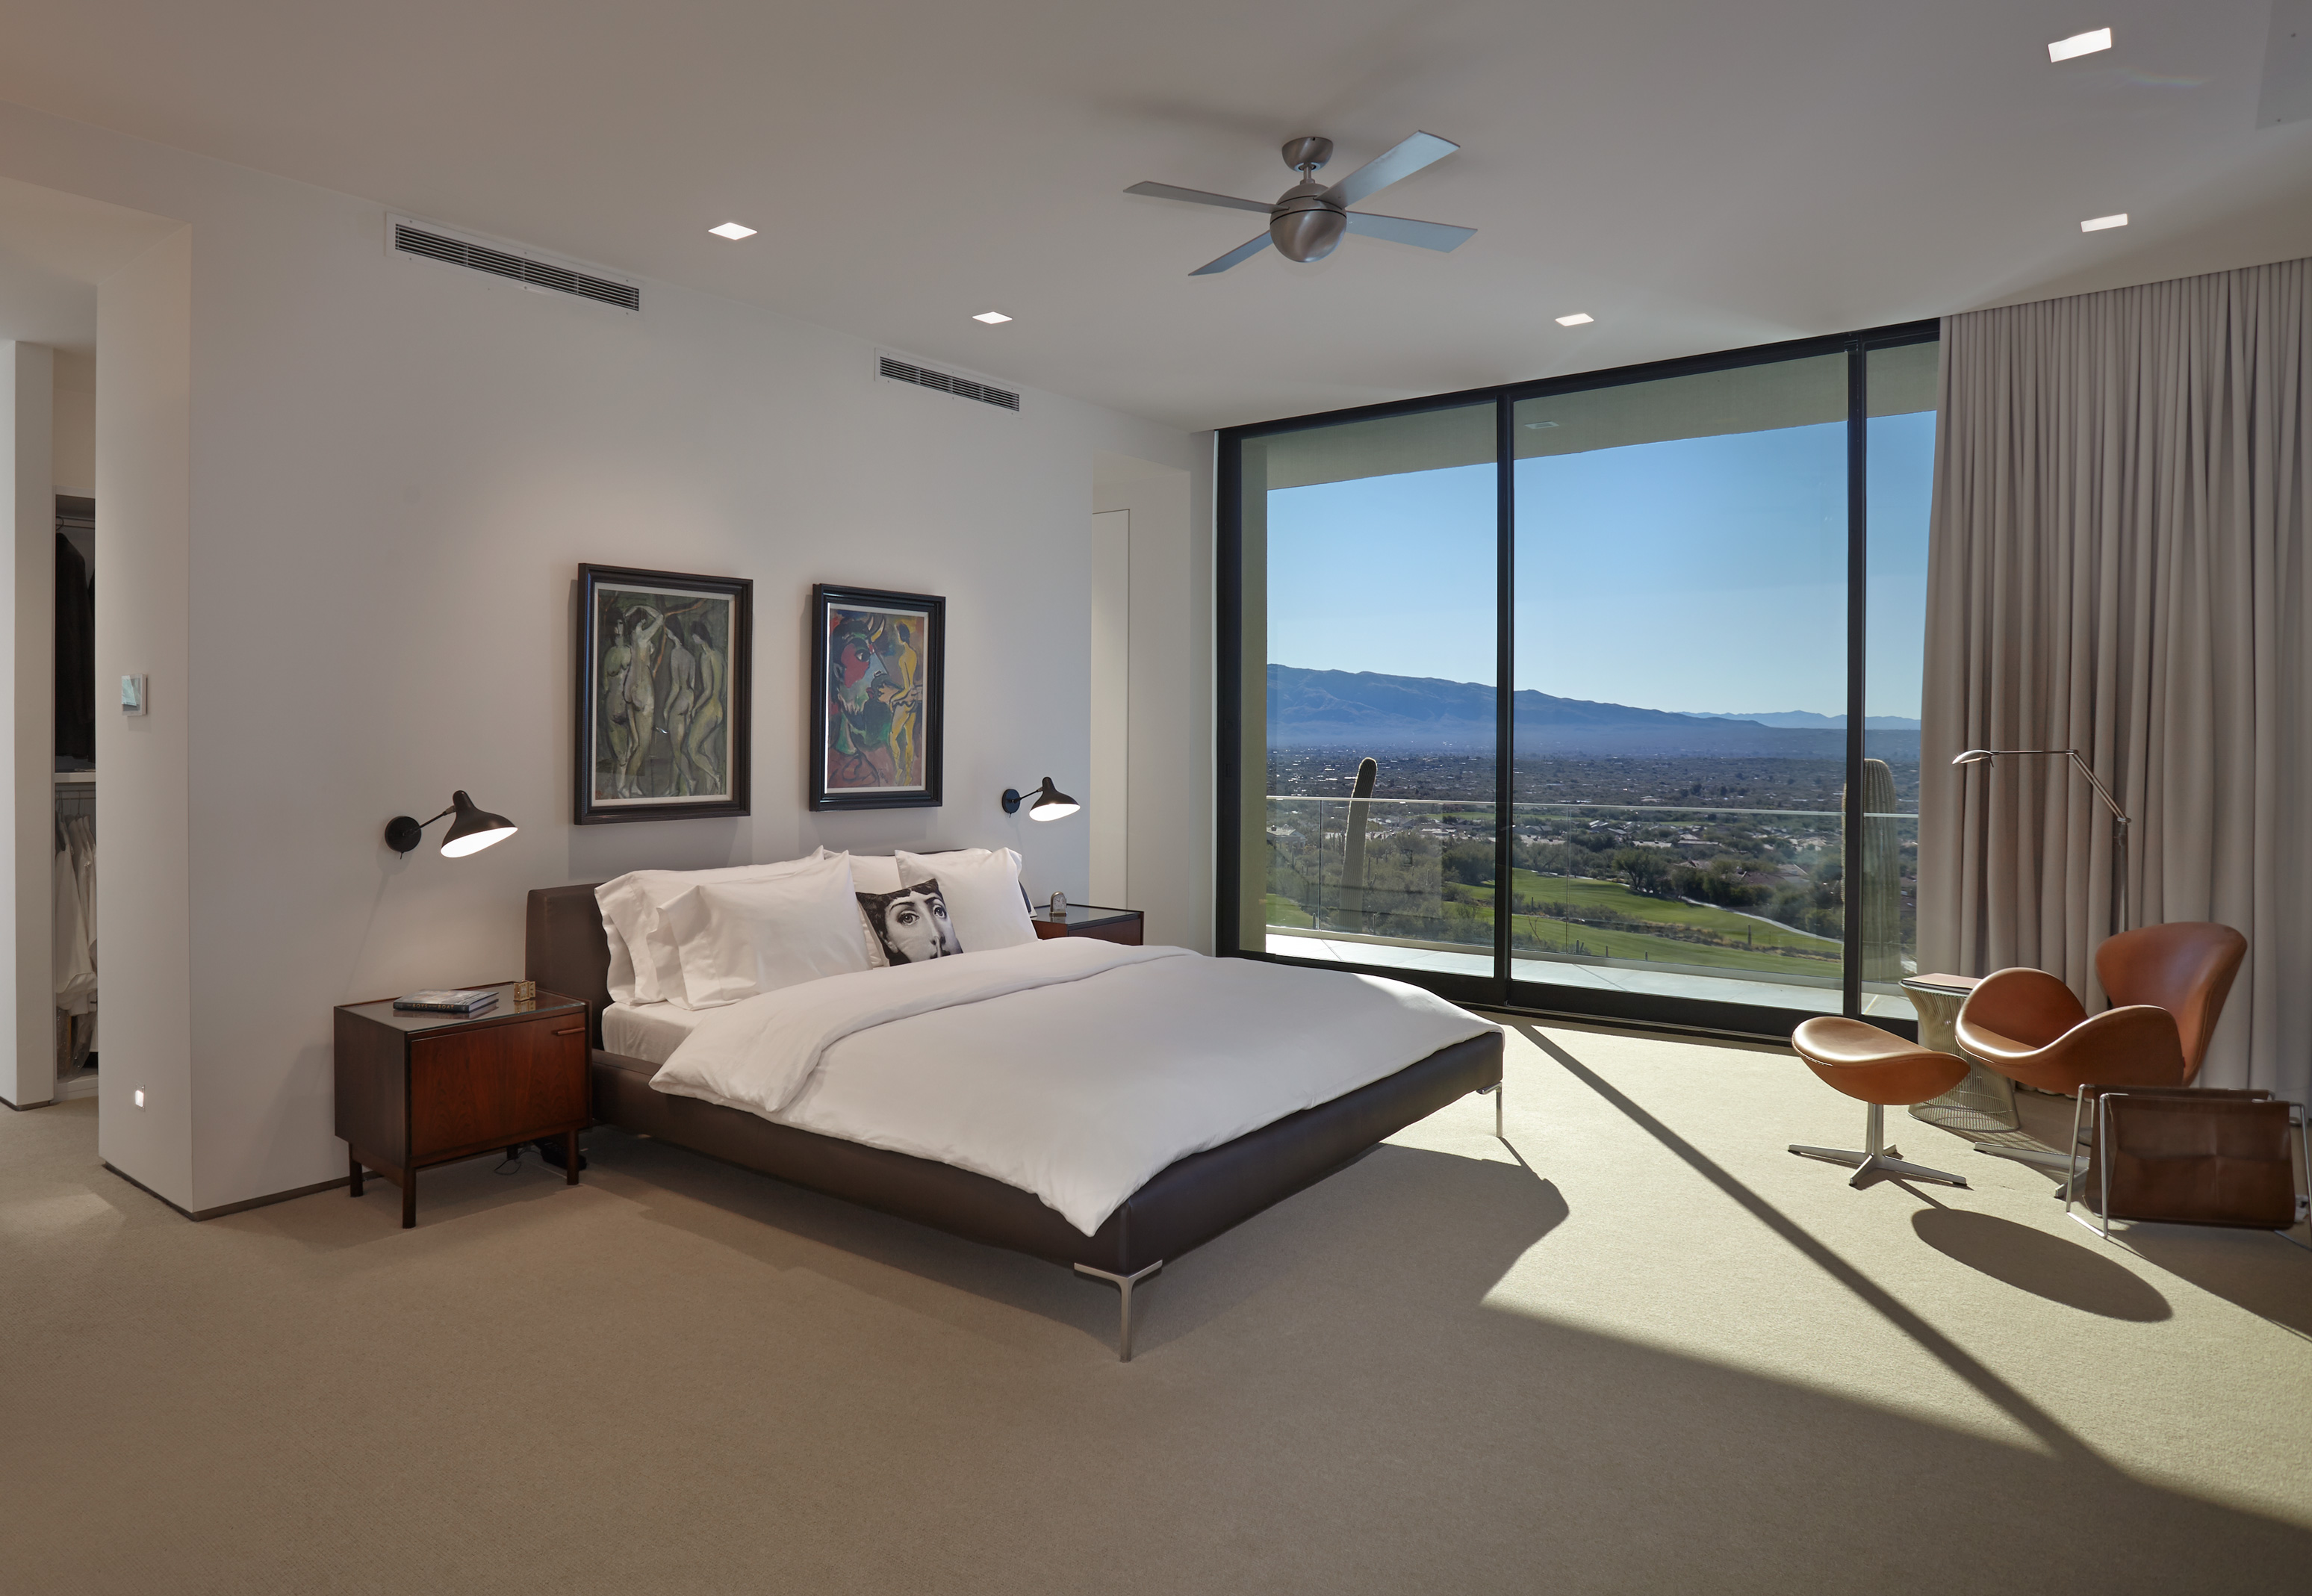 Upscale modern bedroom w/ a view